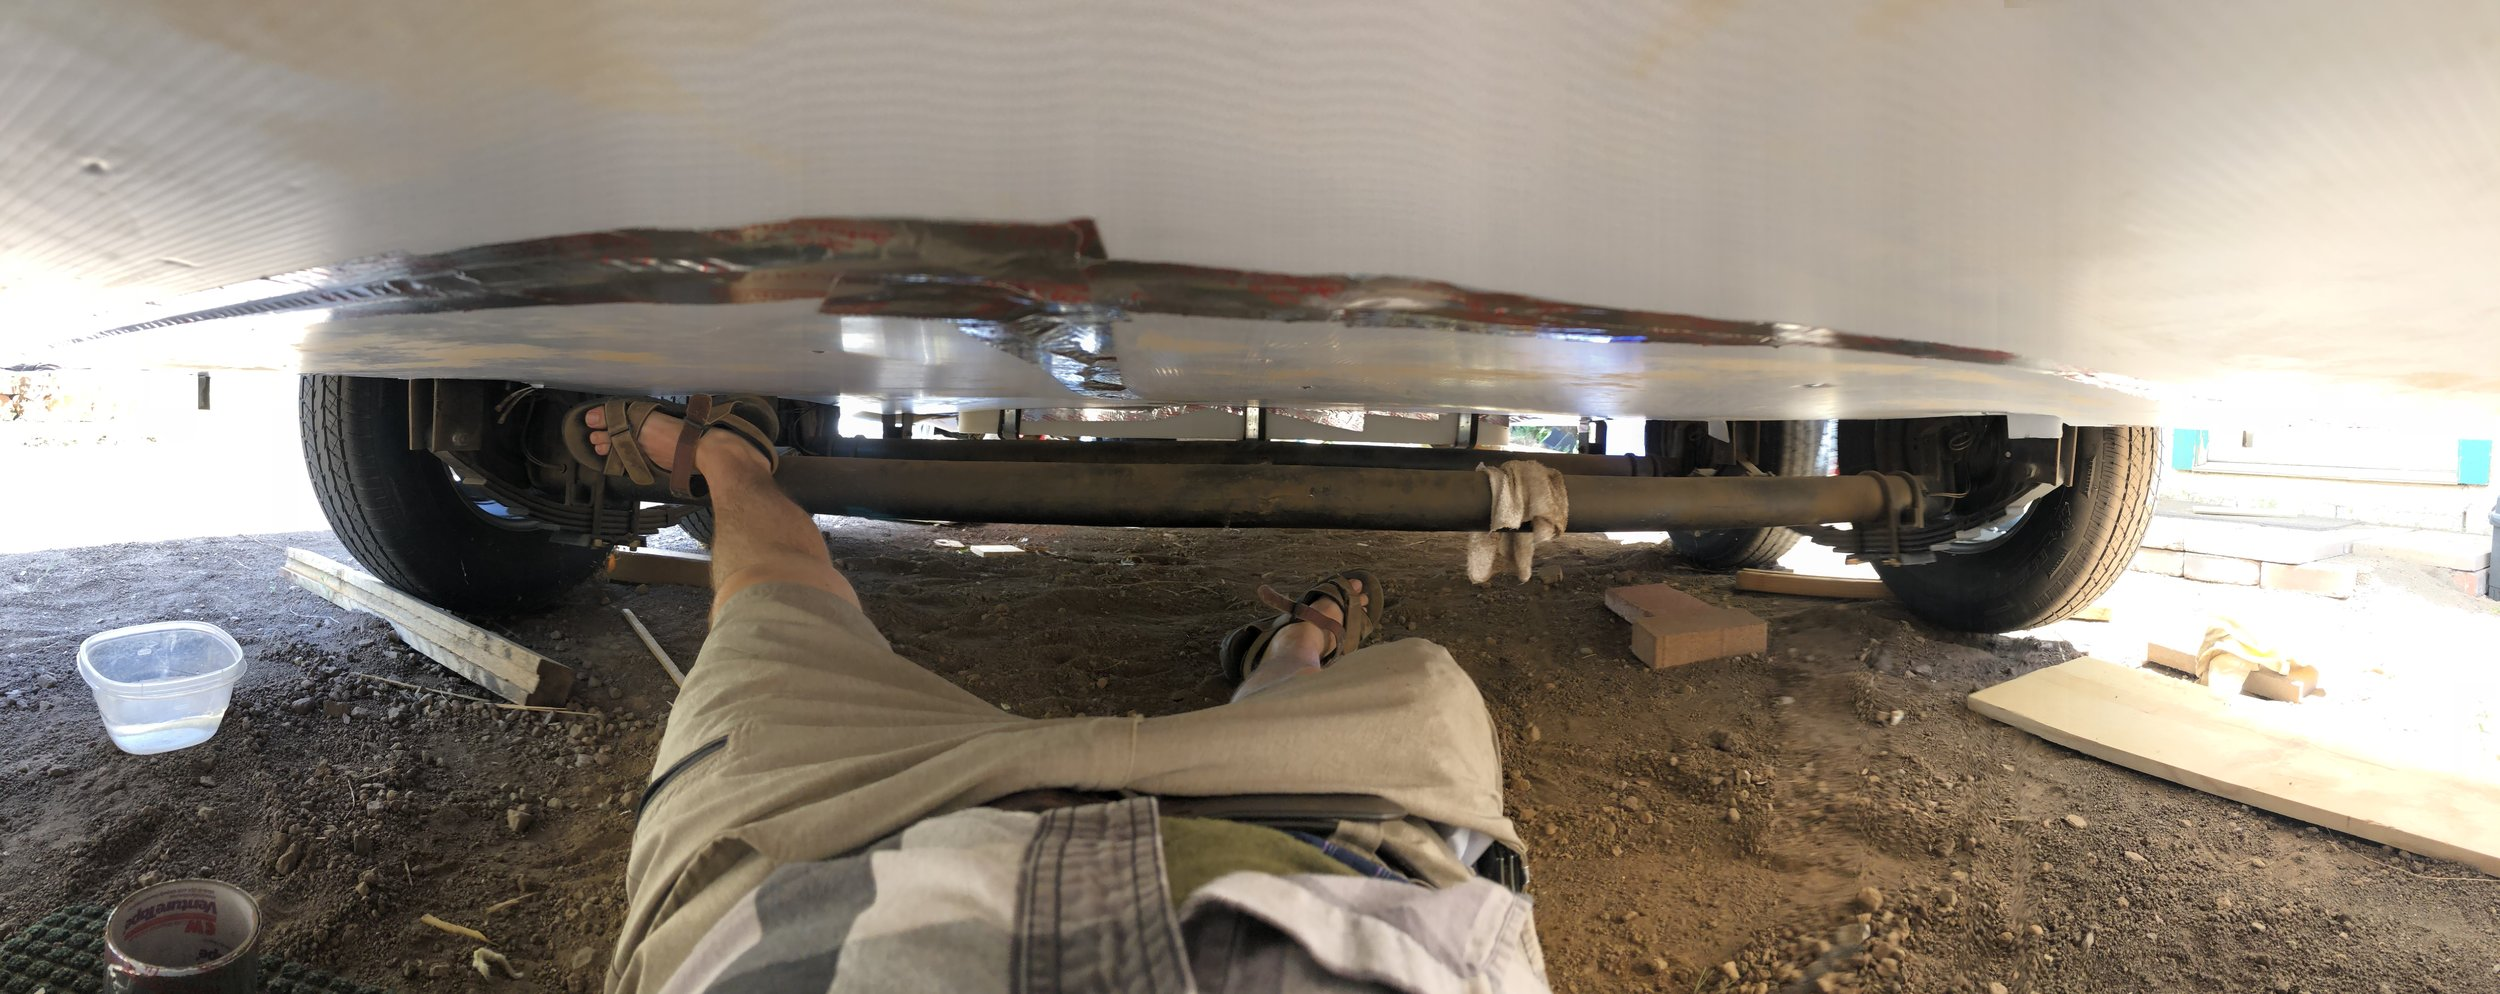 Finished. Our underside is all sealed up from any kind of moisture. -